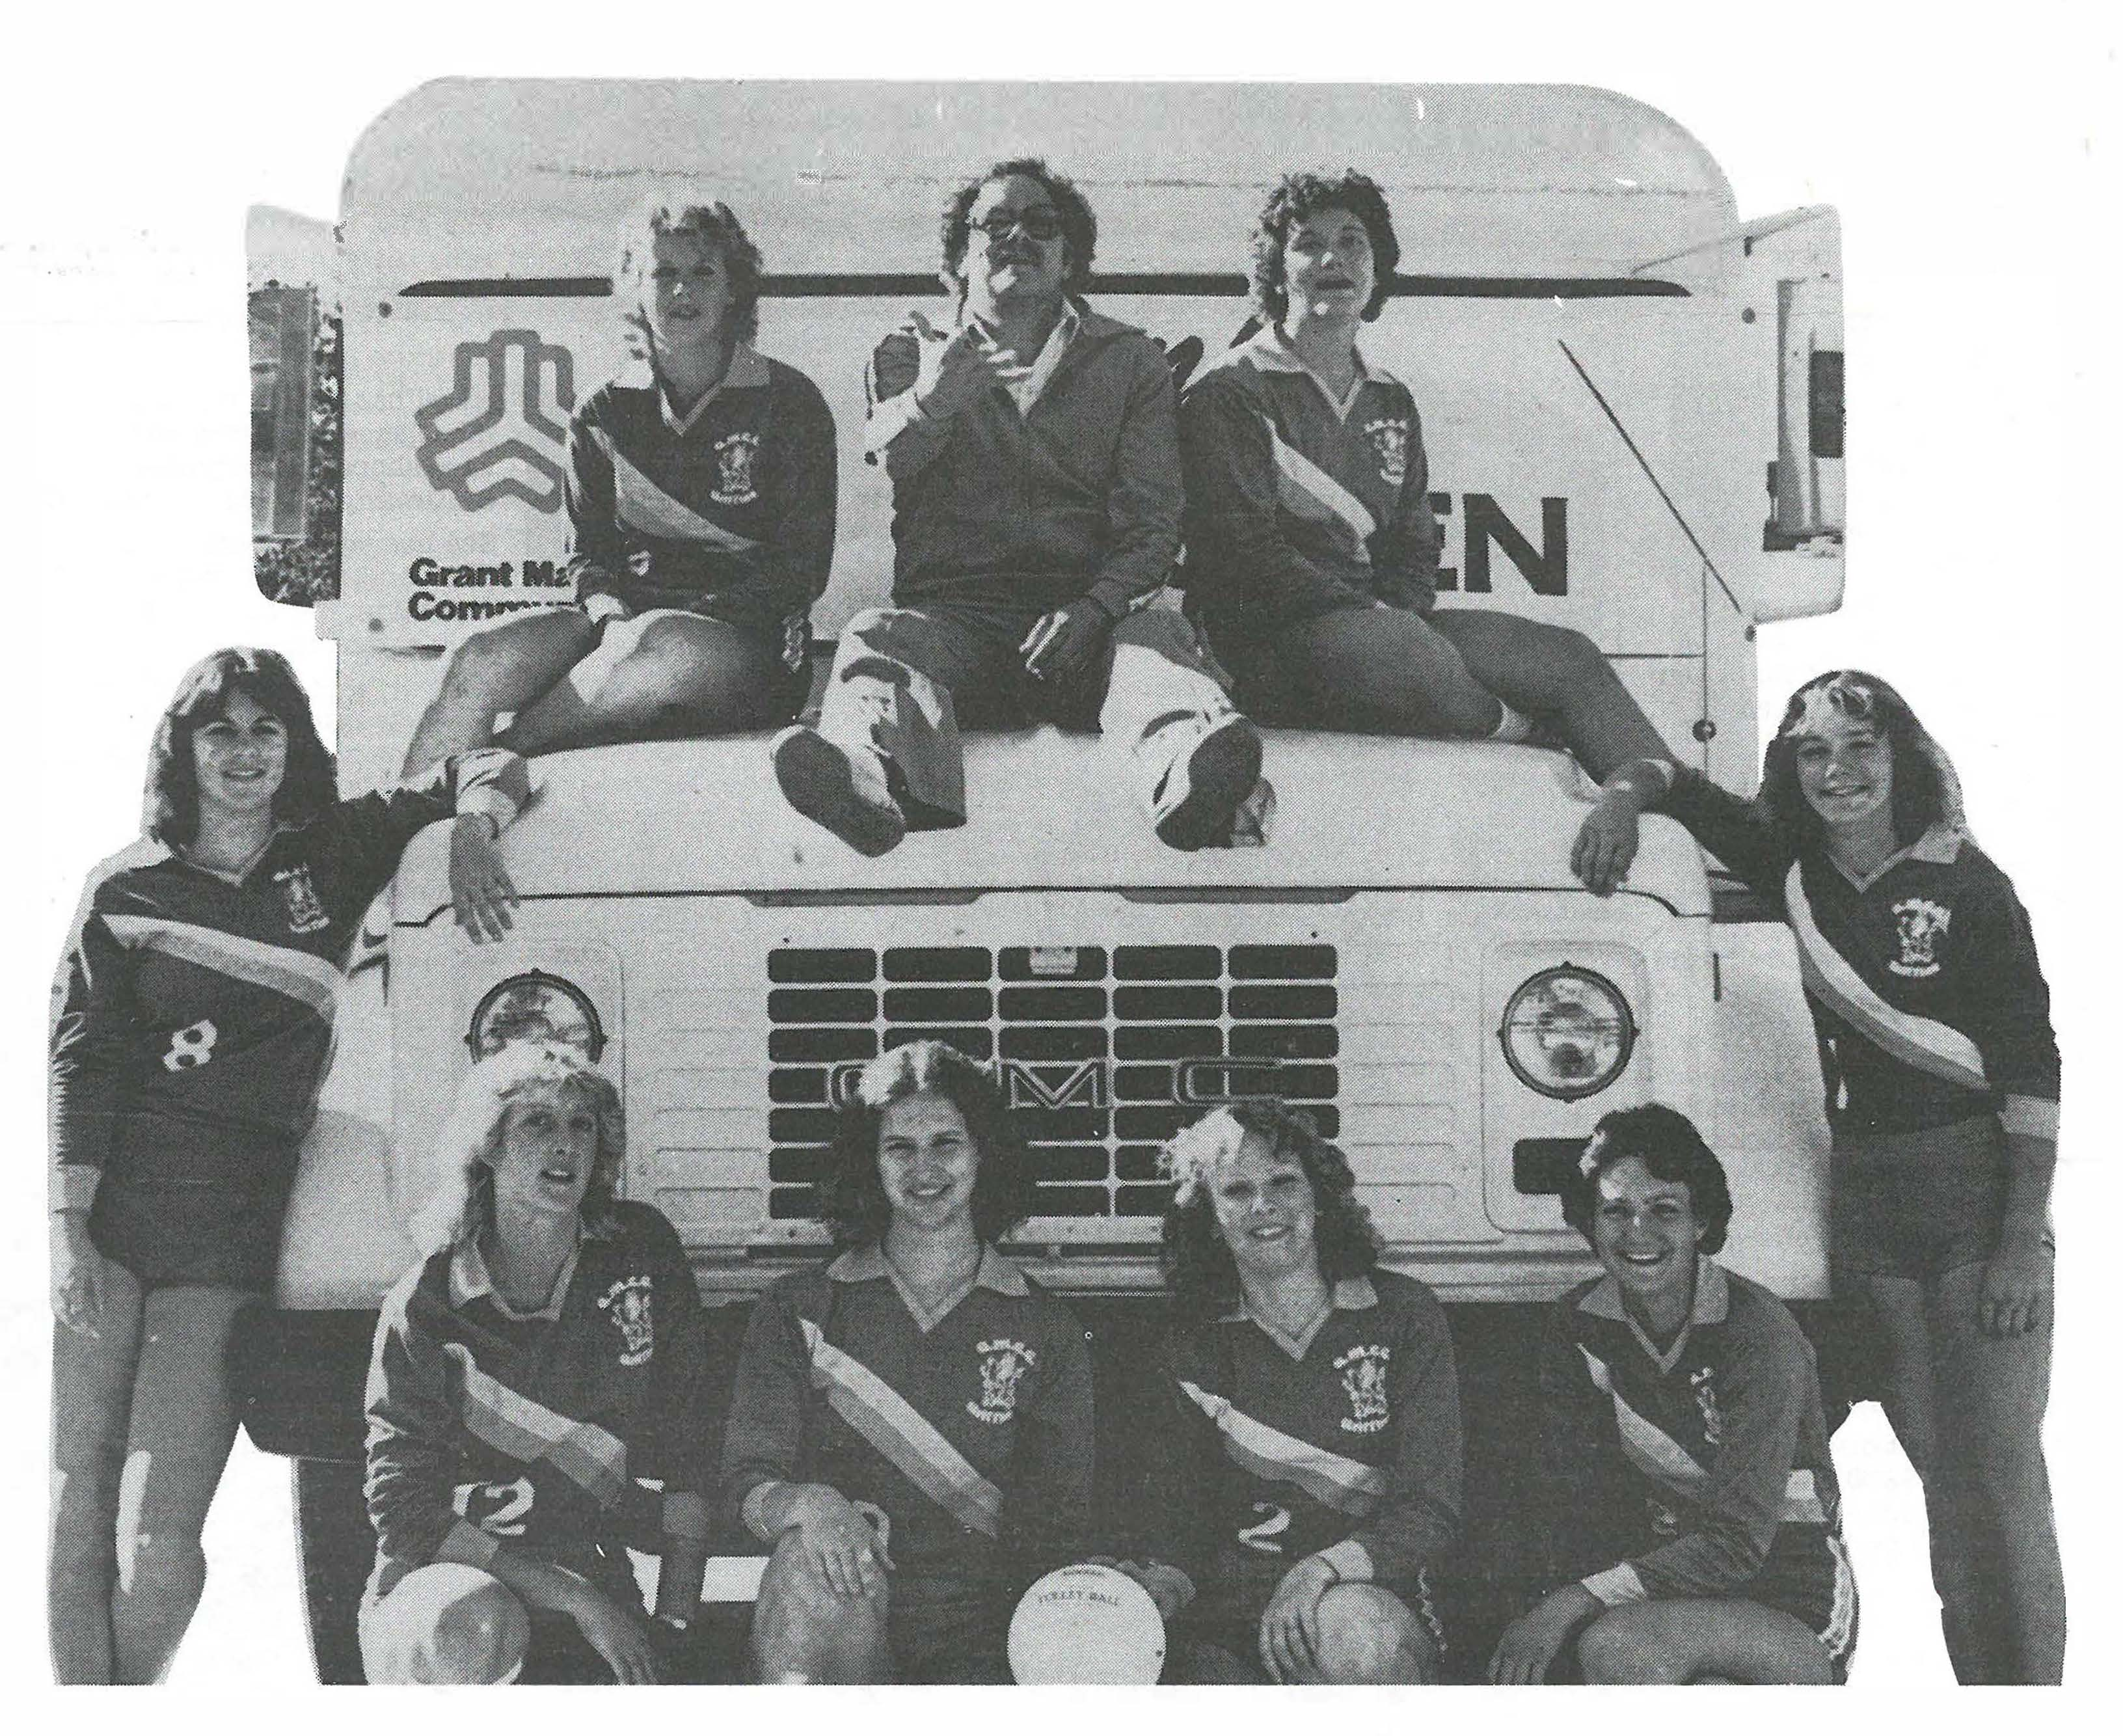 Photograph of the women's volleyball team from 1981 and their coach sitting on top of and around a bus.